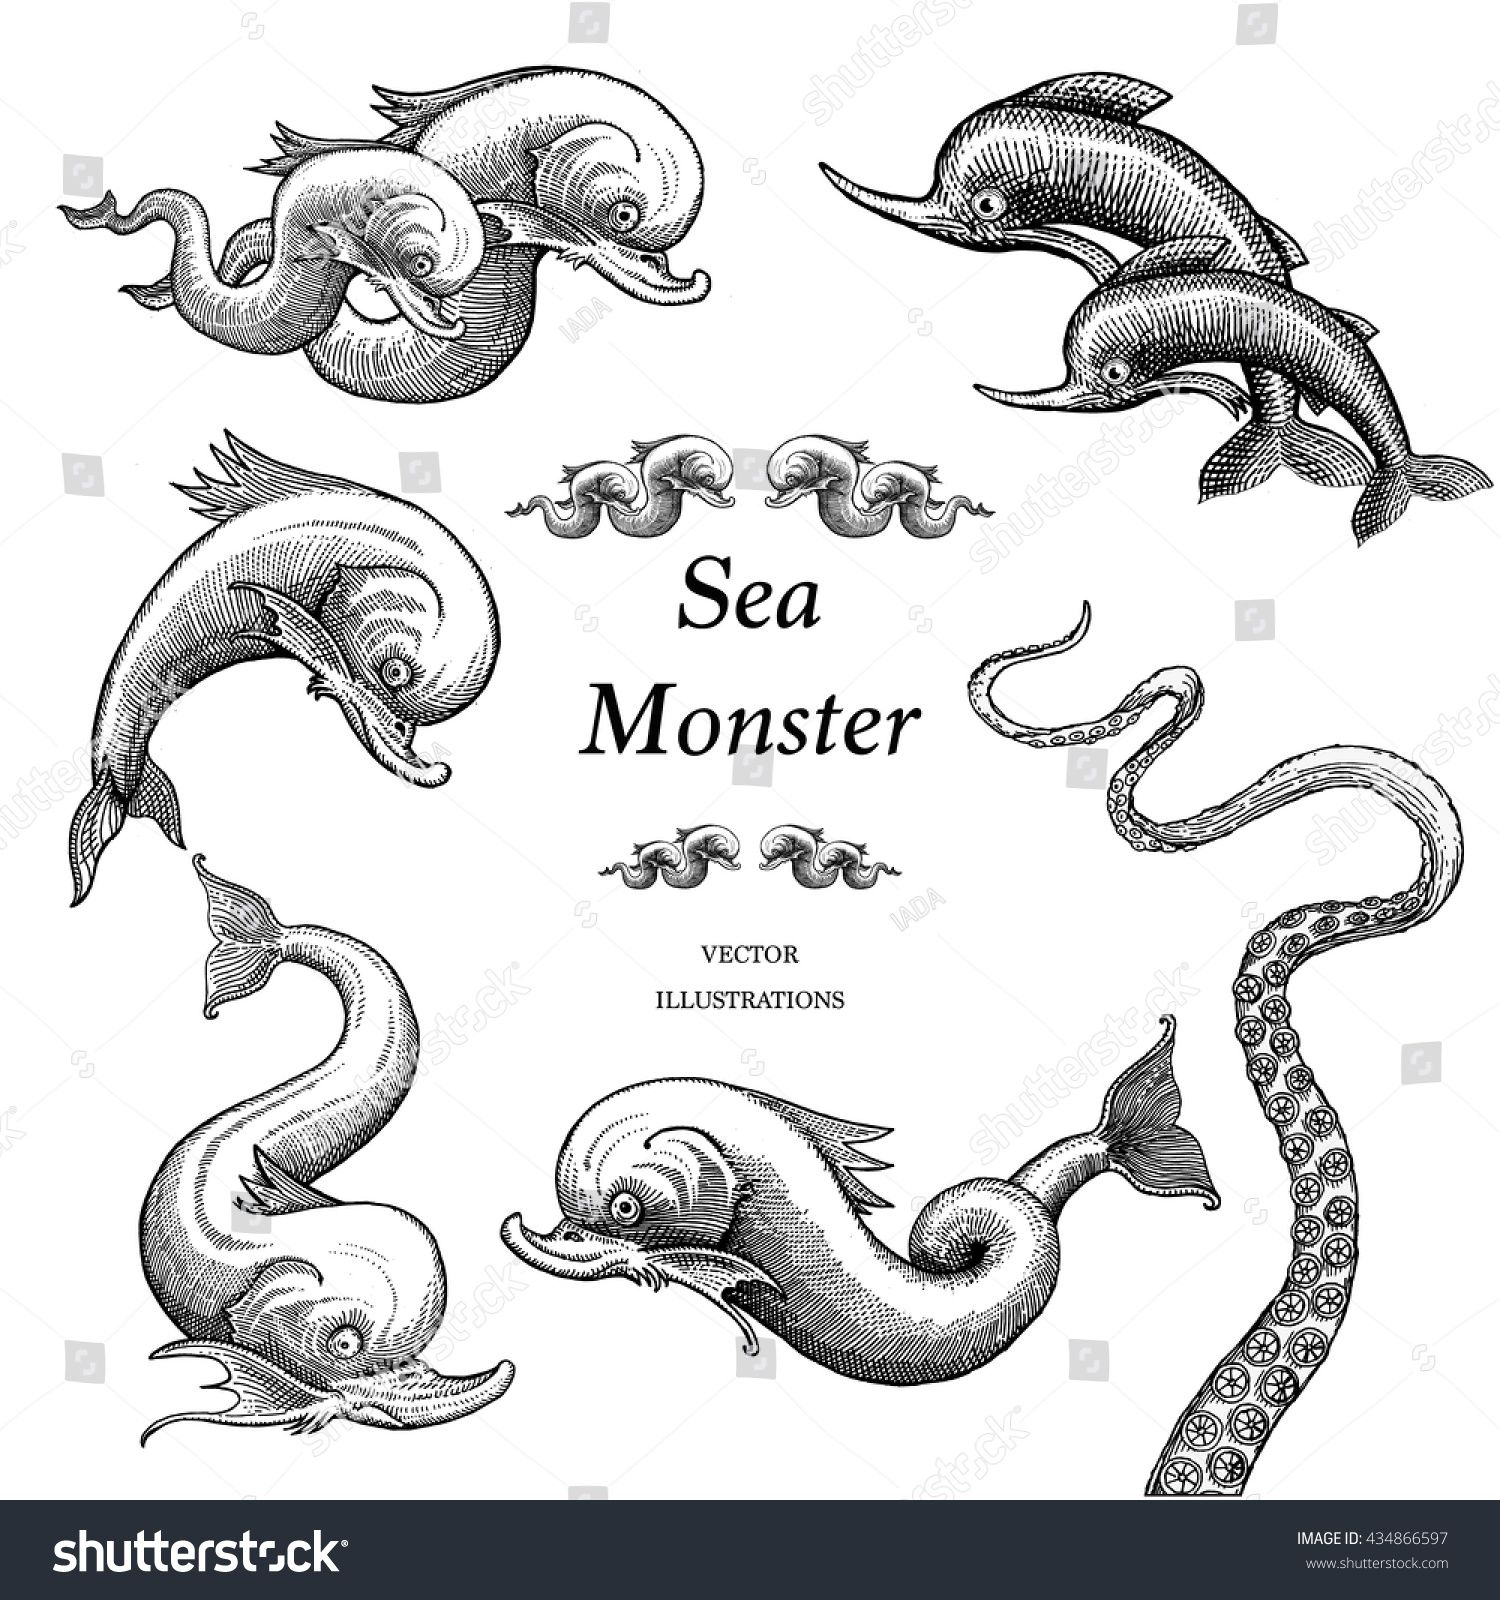 Sea Monster Illustrations In A Vintage Style Monster Illustration Sea Monsters Sea Monsters Drawing